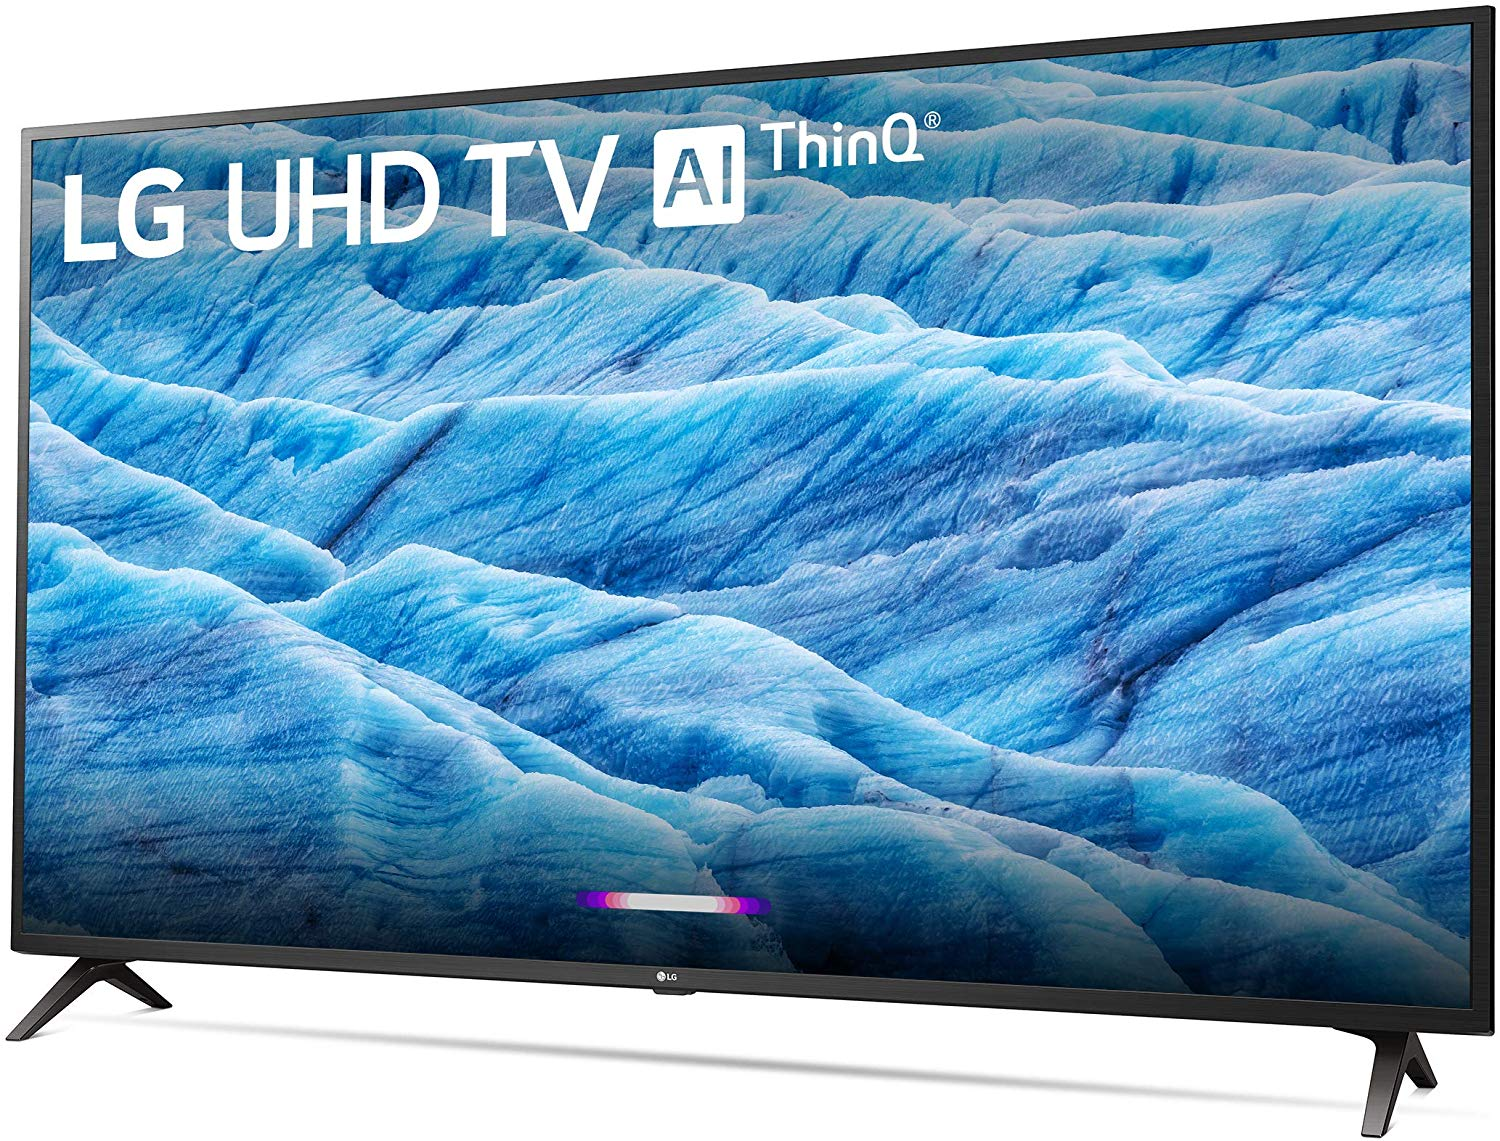 The 2019 55-inch LG UM7300PUA Priced Slashed in Half for Black Friday, Get This TV for $350